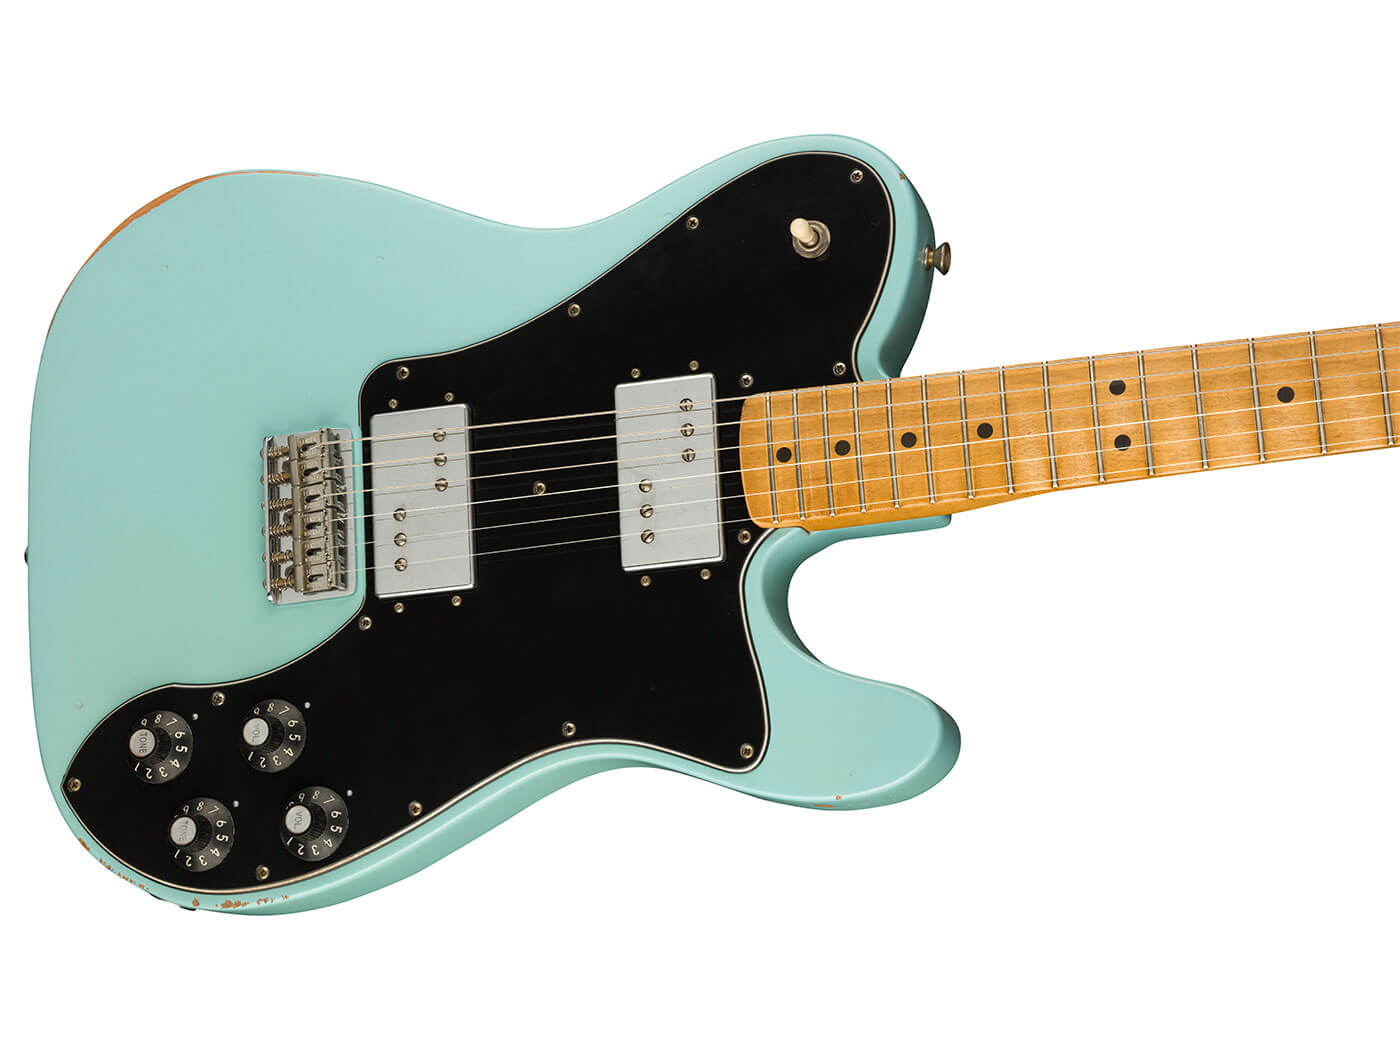 The '70s Telecaster Deluxe in Daphne Blue.